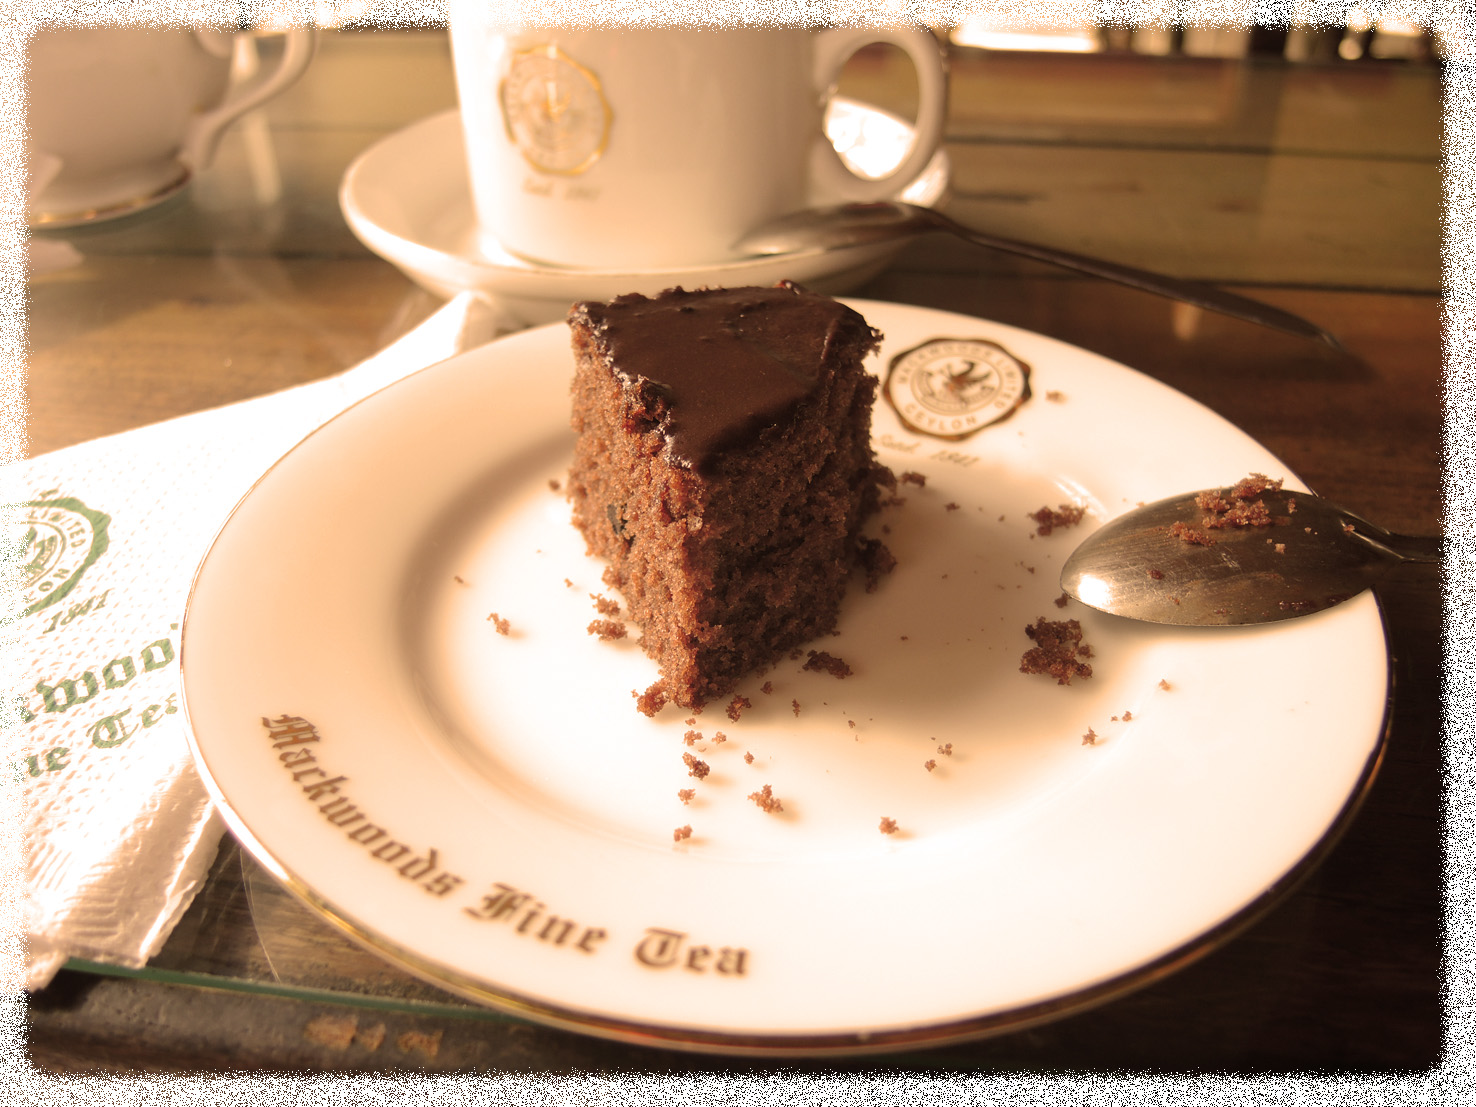 tea and chocolate cake